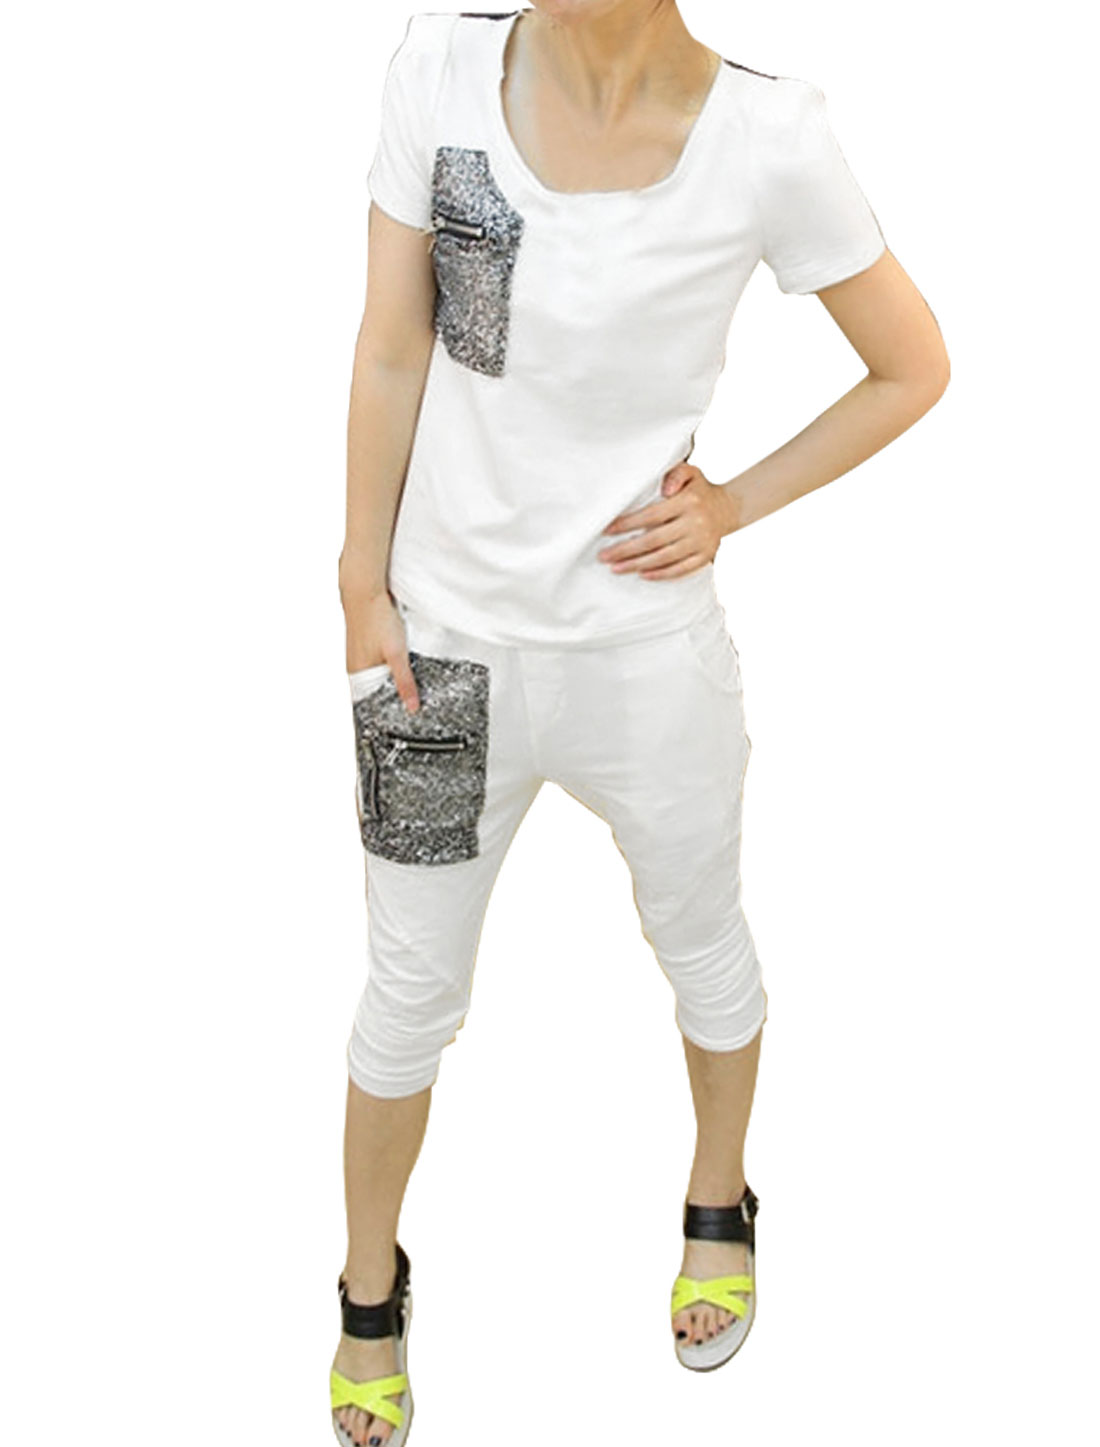 Ladies Round Neck Shirt & Panel Capris Pants White Black XS